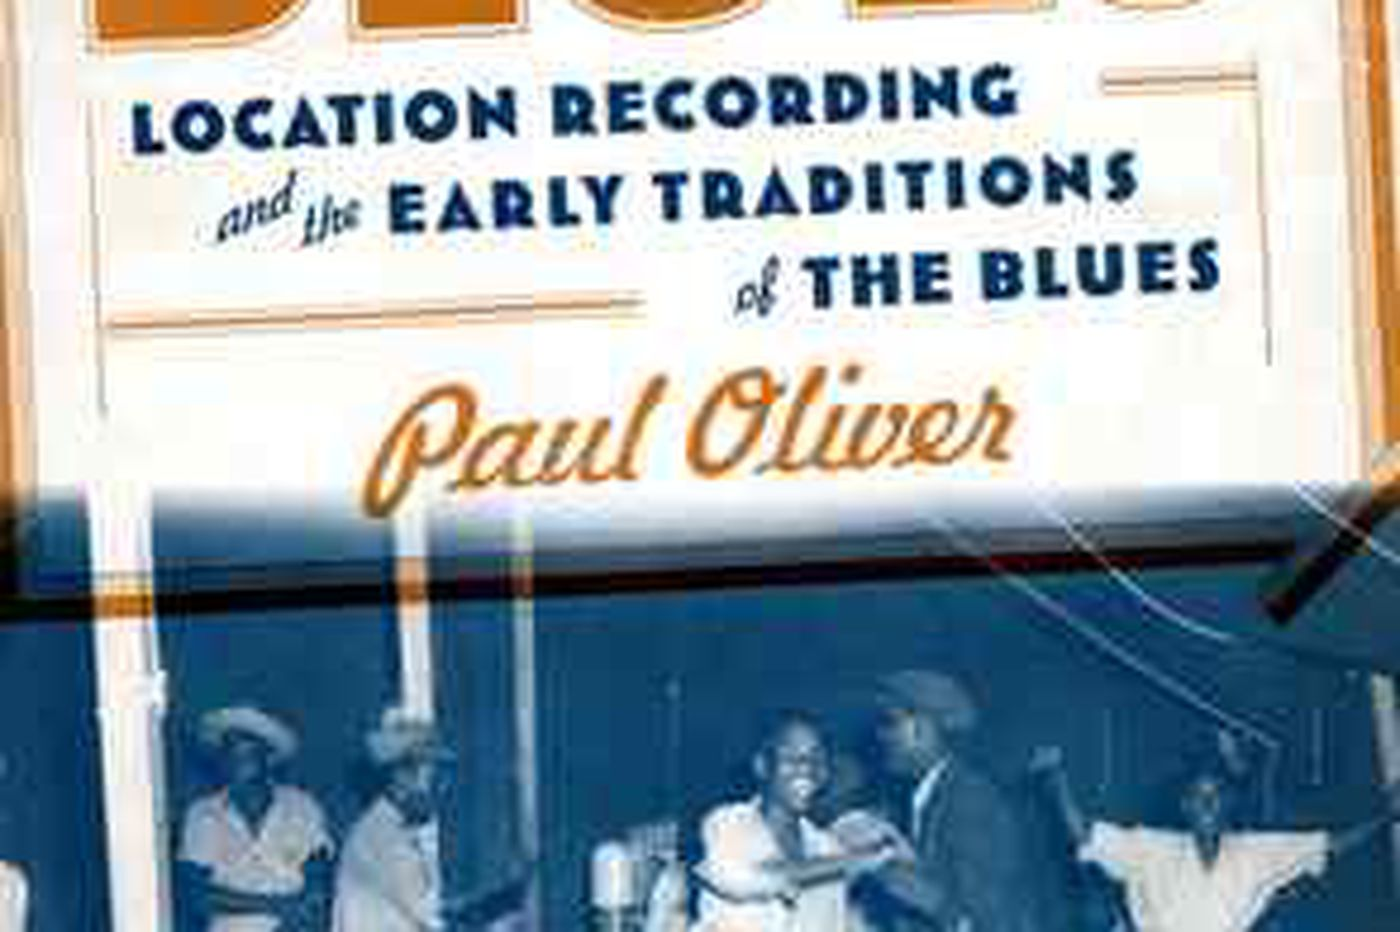 Blues' early days, recorded on location